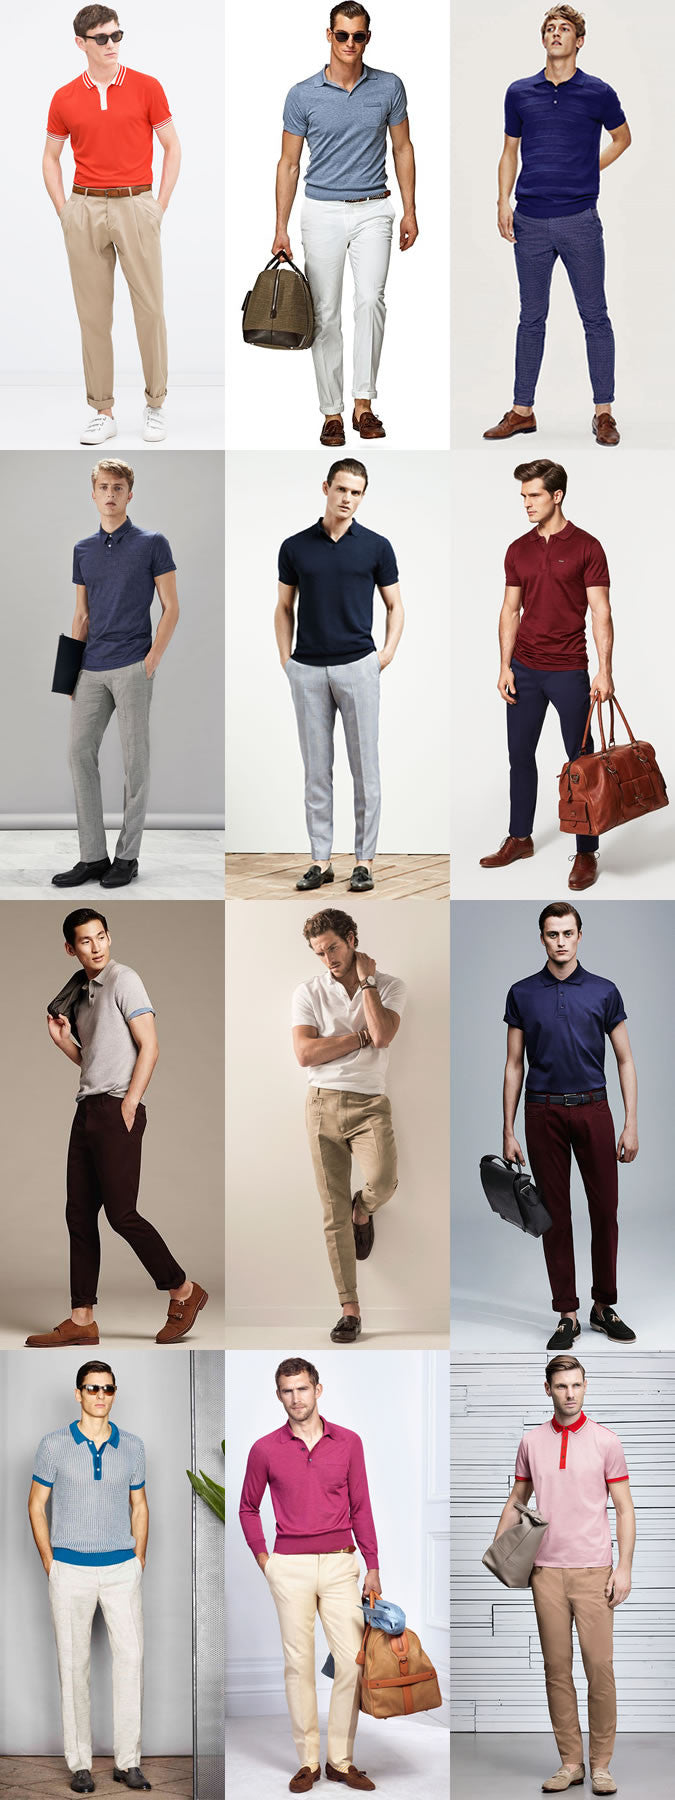 How To Wear A Polo Shirt For Men. 5 Awesome Looks You Can Try ...